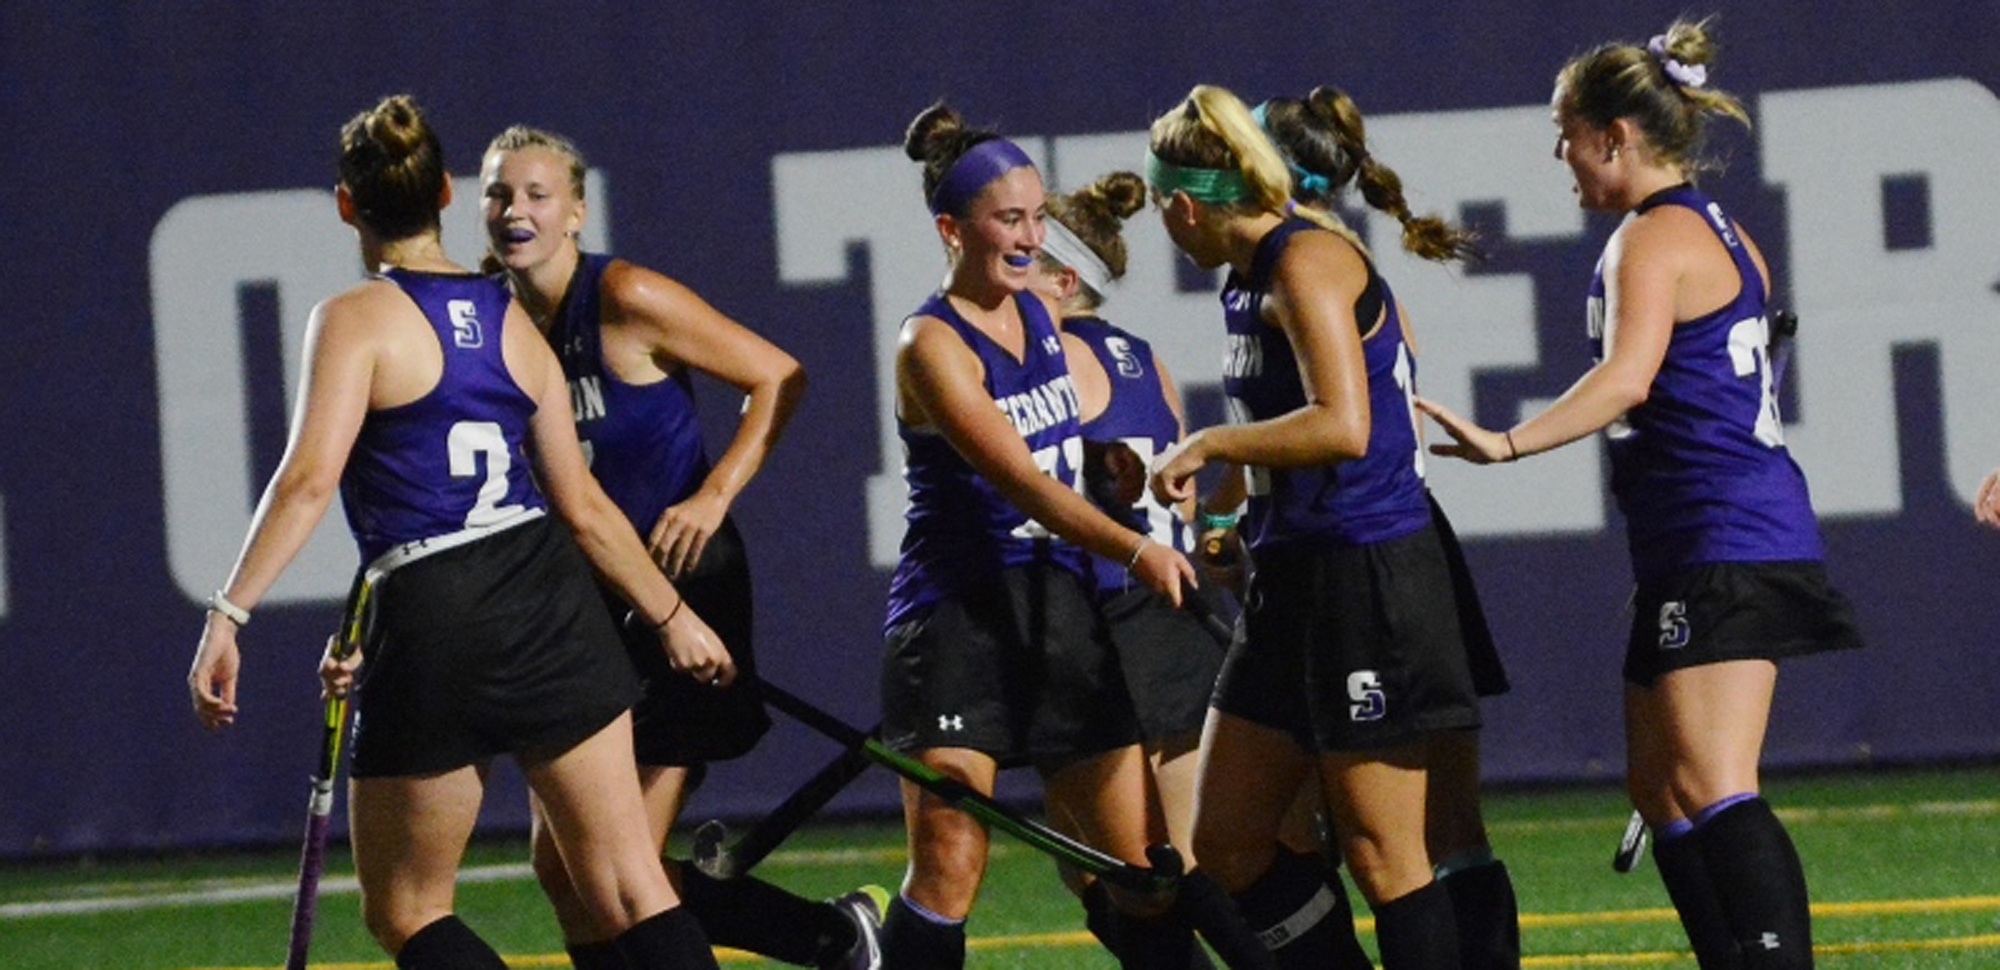 The field hockey team begins its quest for its first-ever Landmark Conference championship on Wednesday at Catholic.